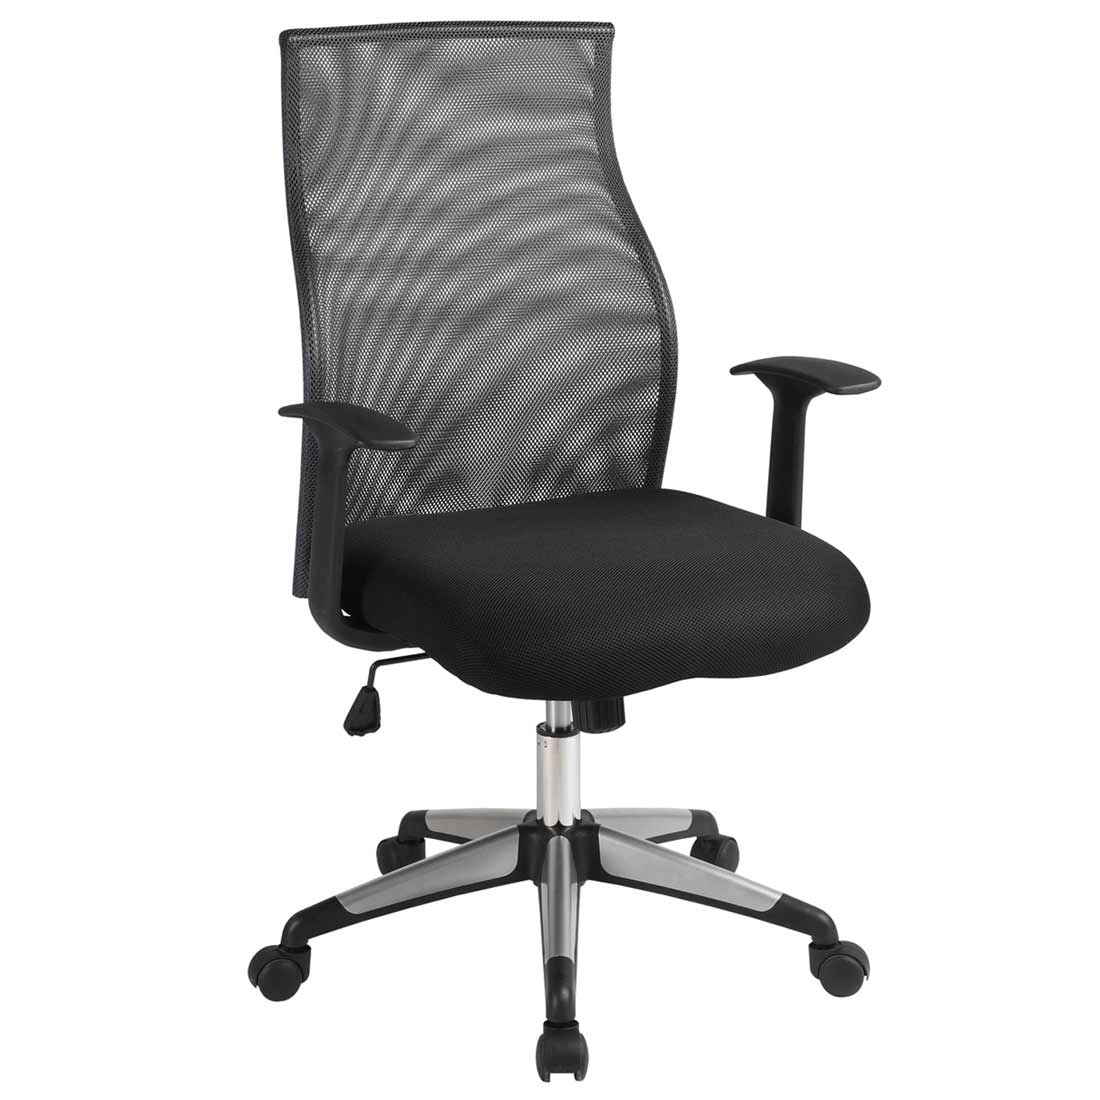 adjustable office mesh chair with fabric seat